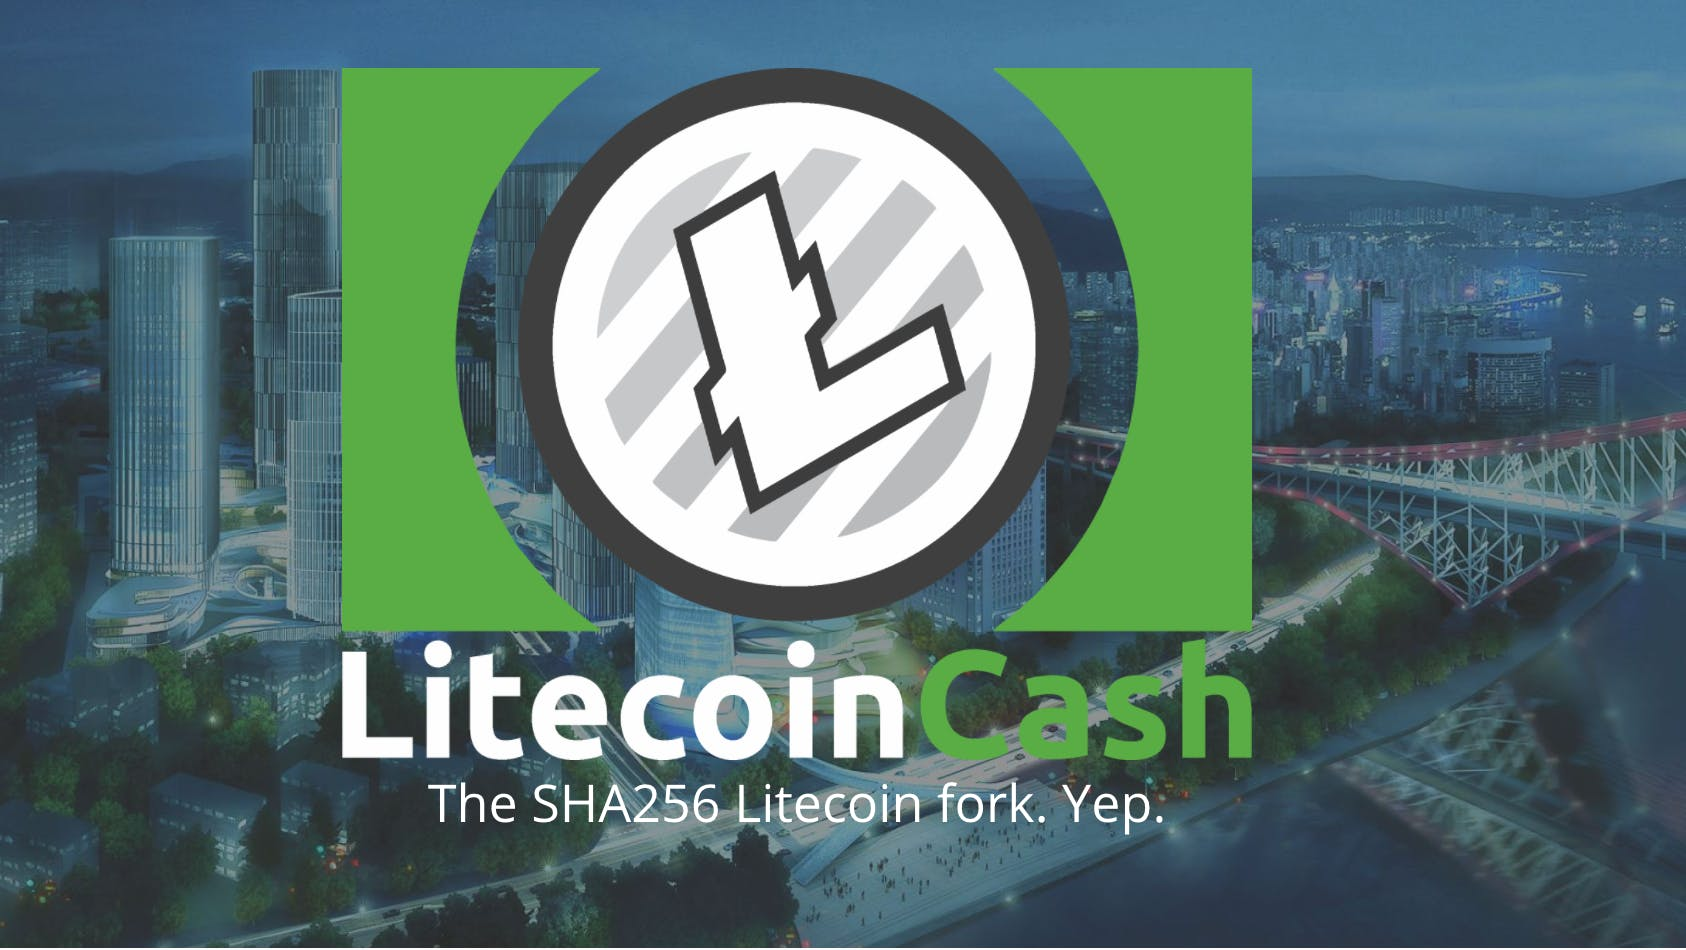 Litecoin cash website logo.